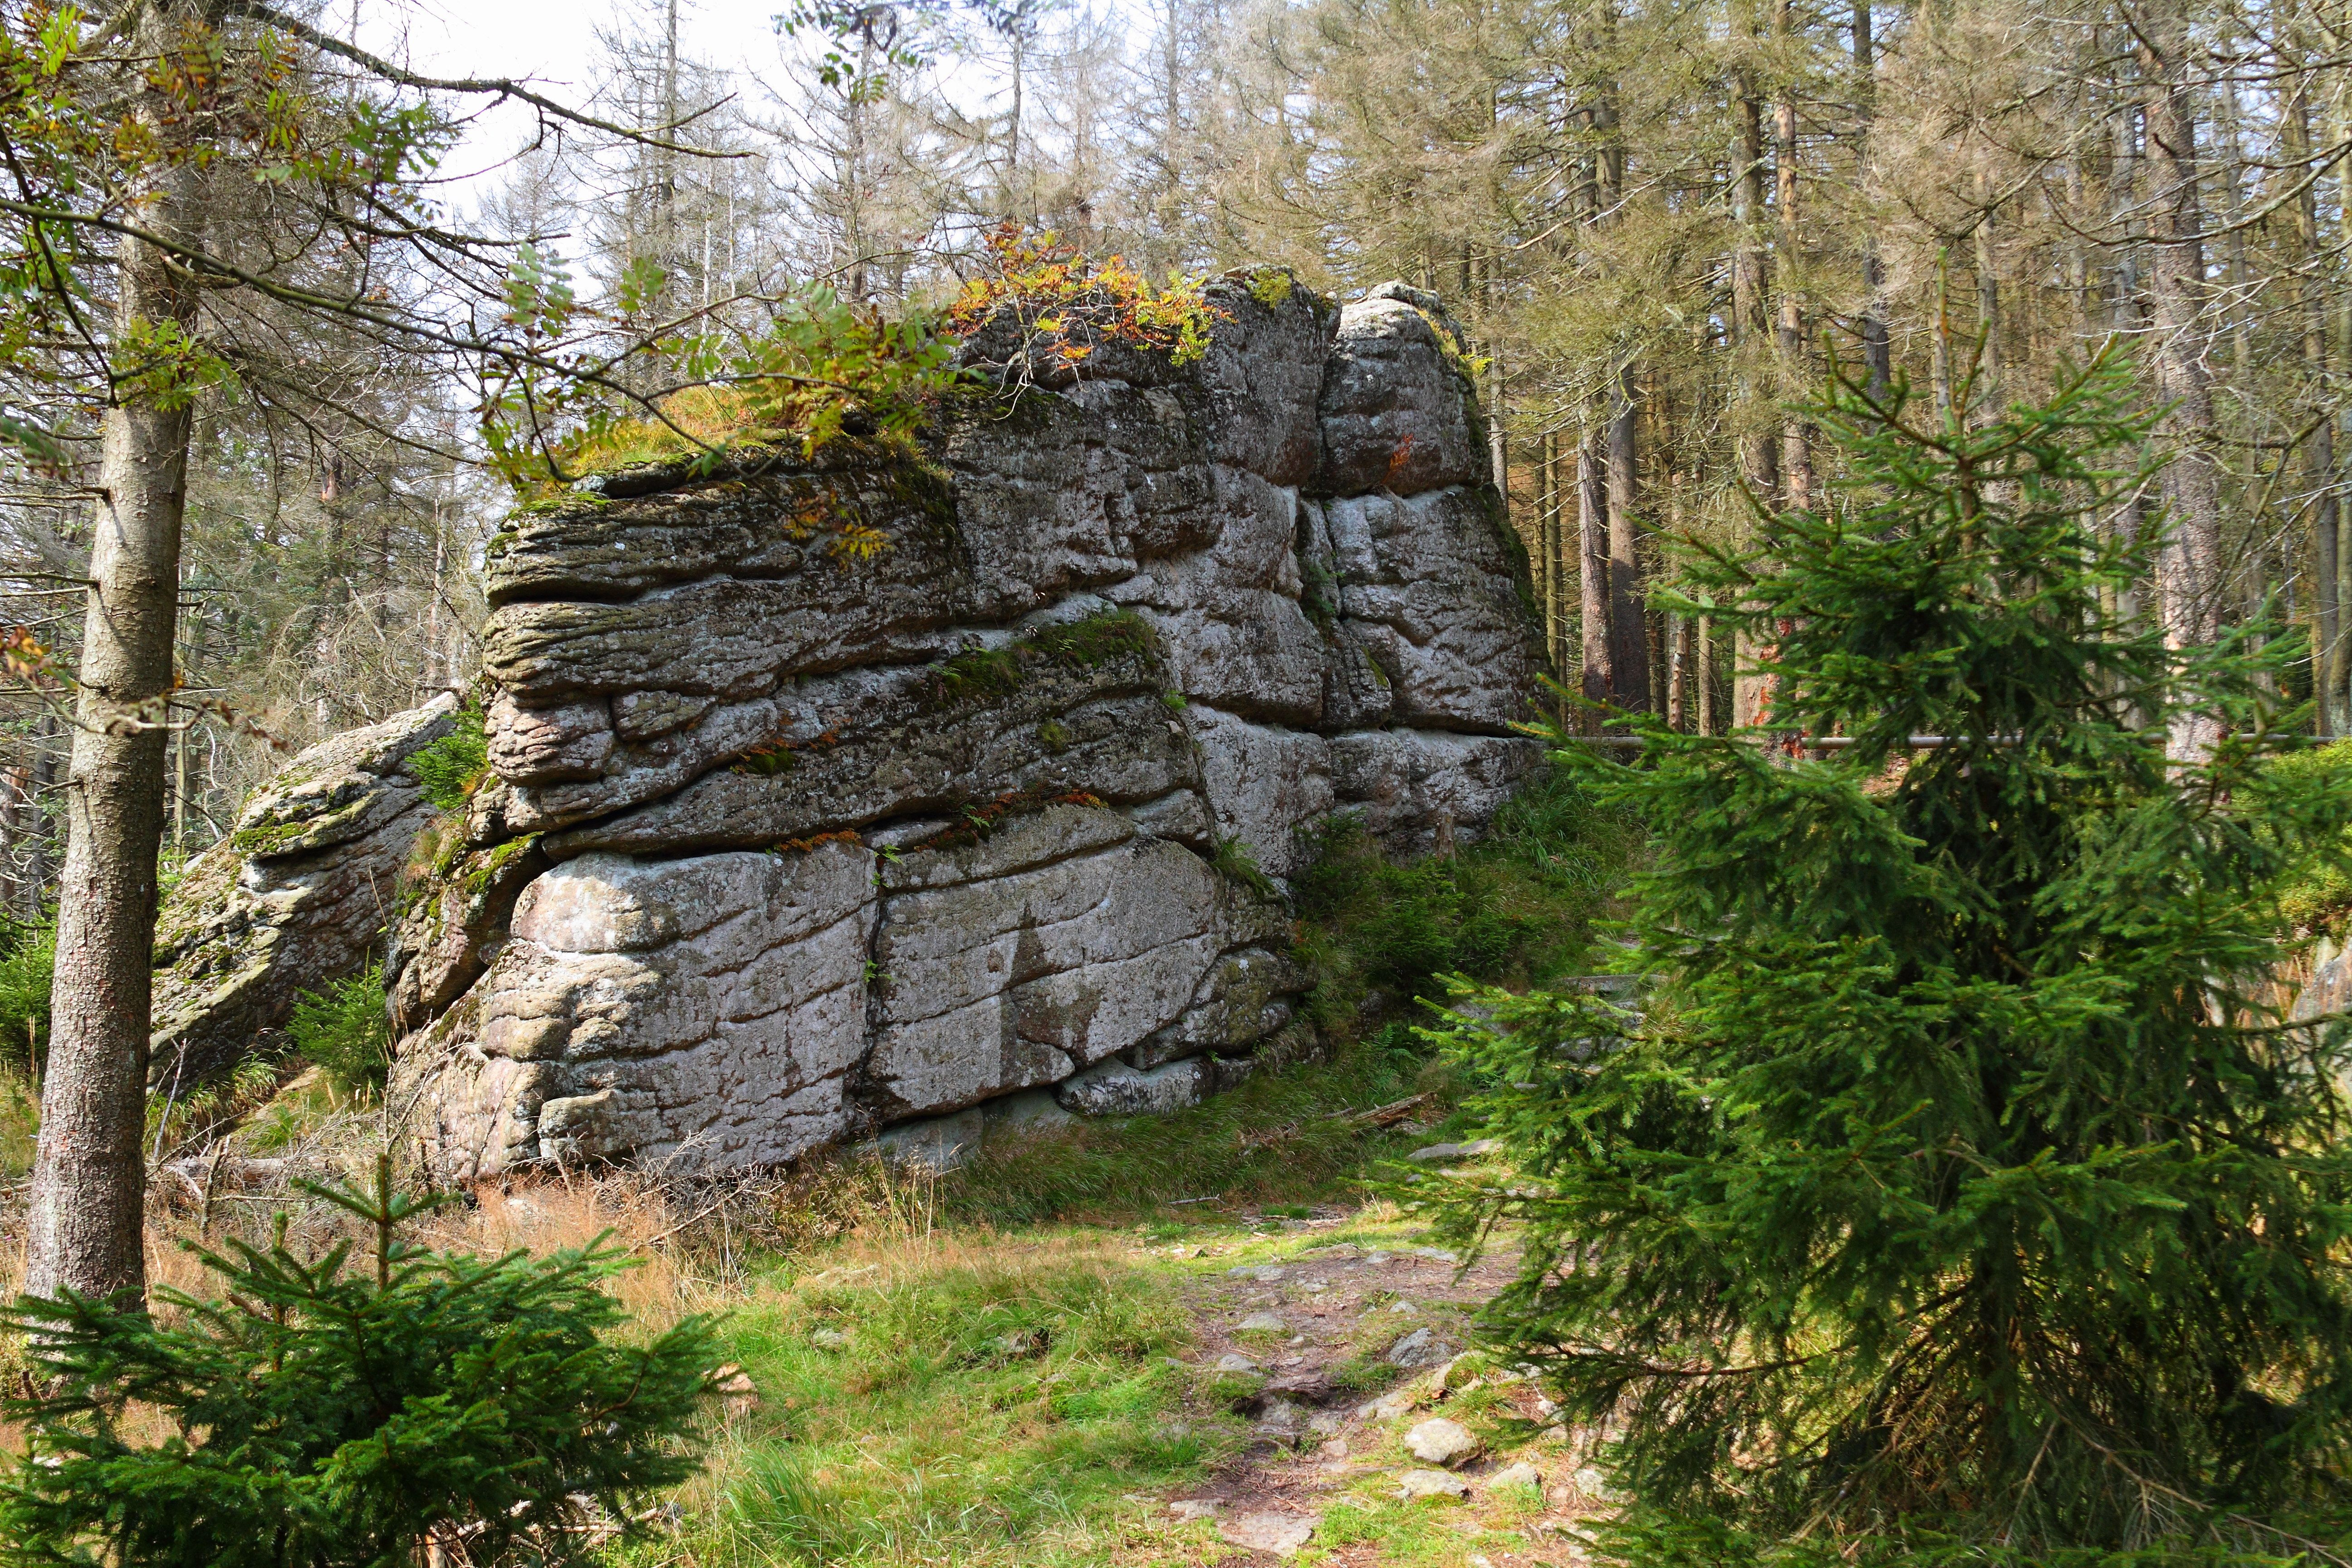 Just a piece of rock on the trail to the Achtermannshöhe